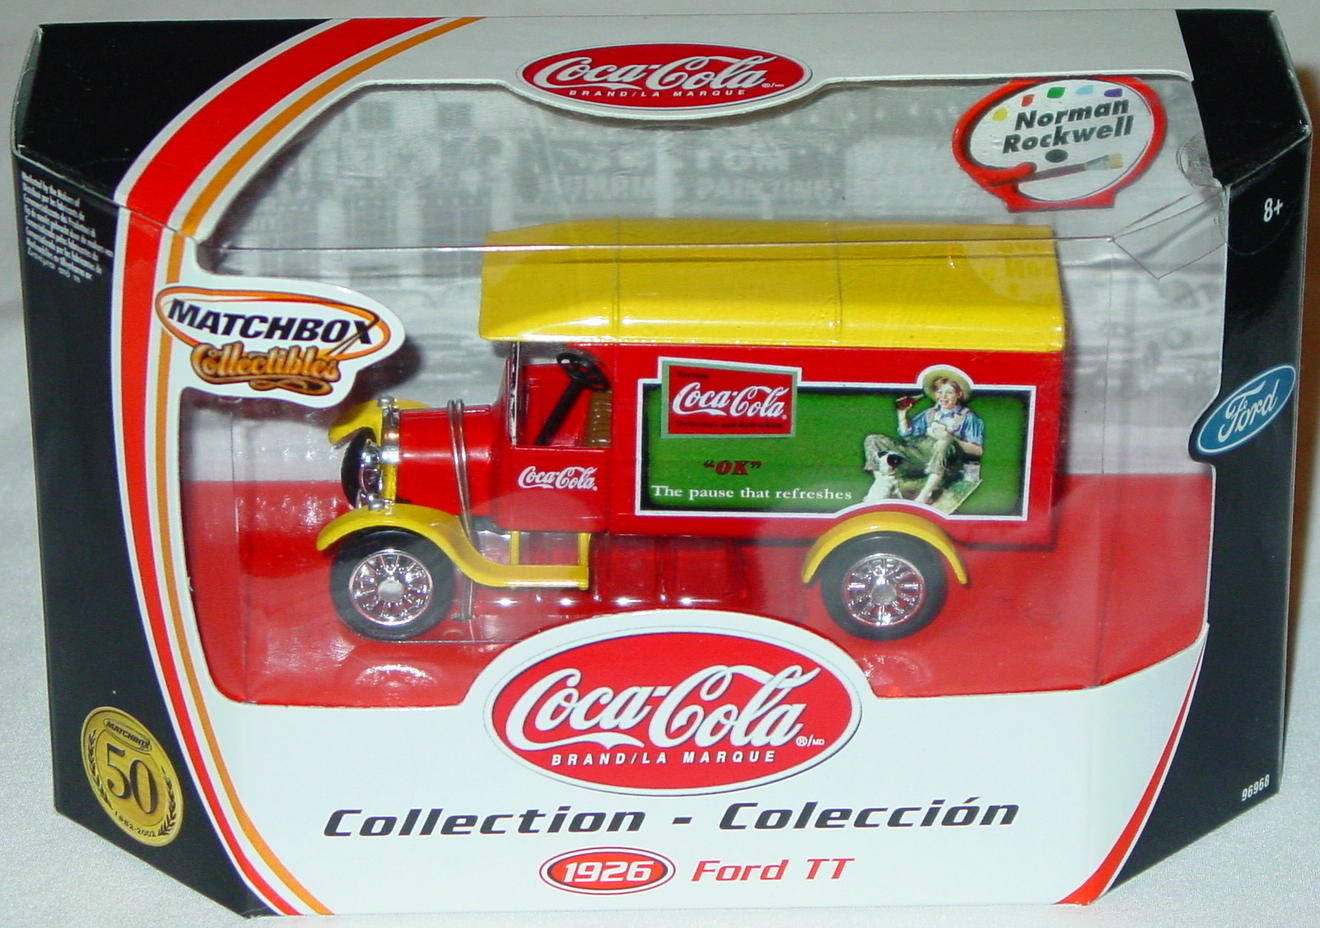 Collectibles - 96968 26 Ford TT Van Coke Norman Rockwell